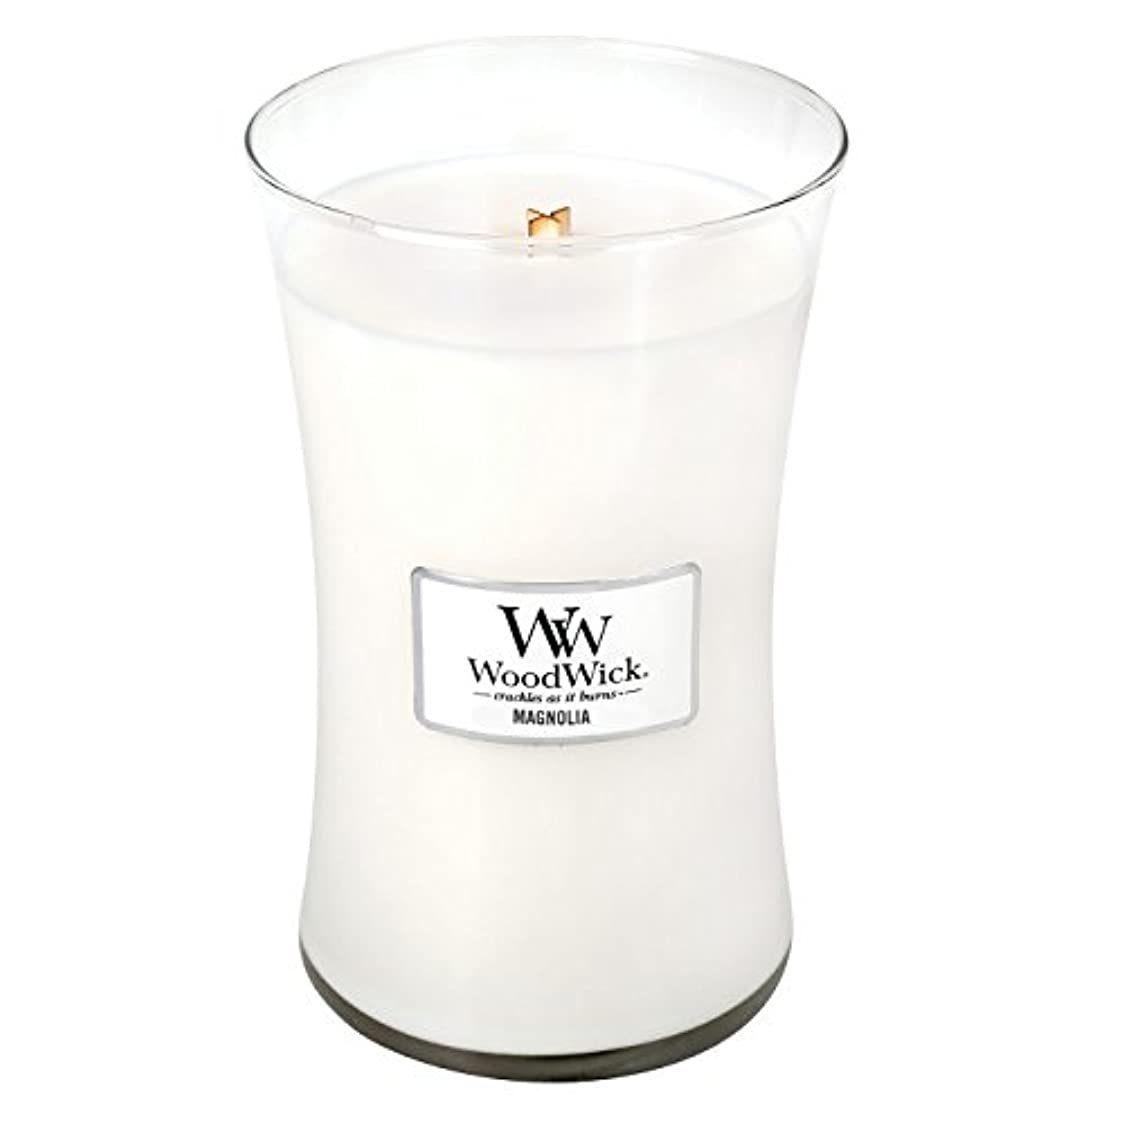 燃料意図するトレーダーWoodwick Magnolia , Highly Scented Candle、クラシック砂時計Jar , Large 7-inch、21.5 Oz